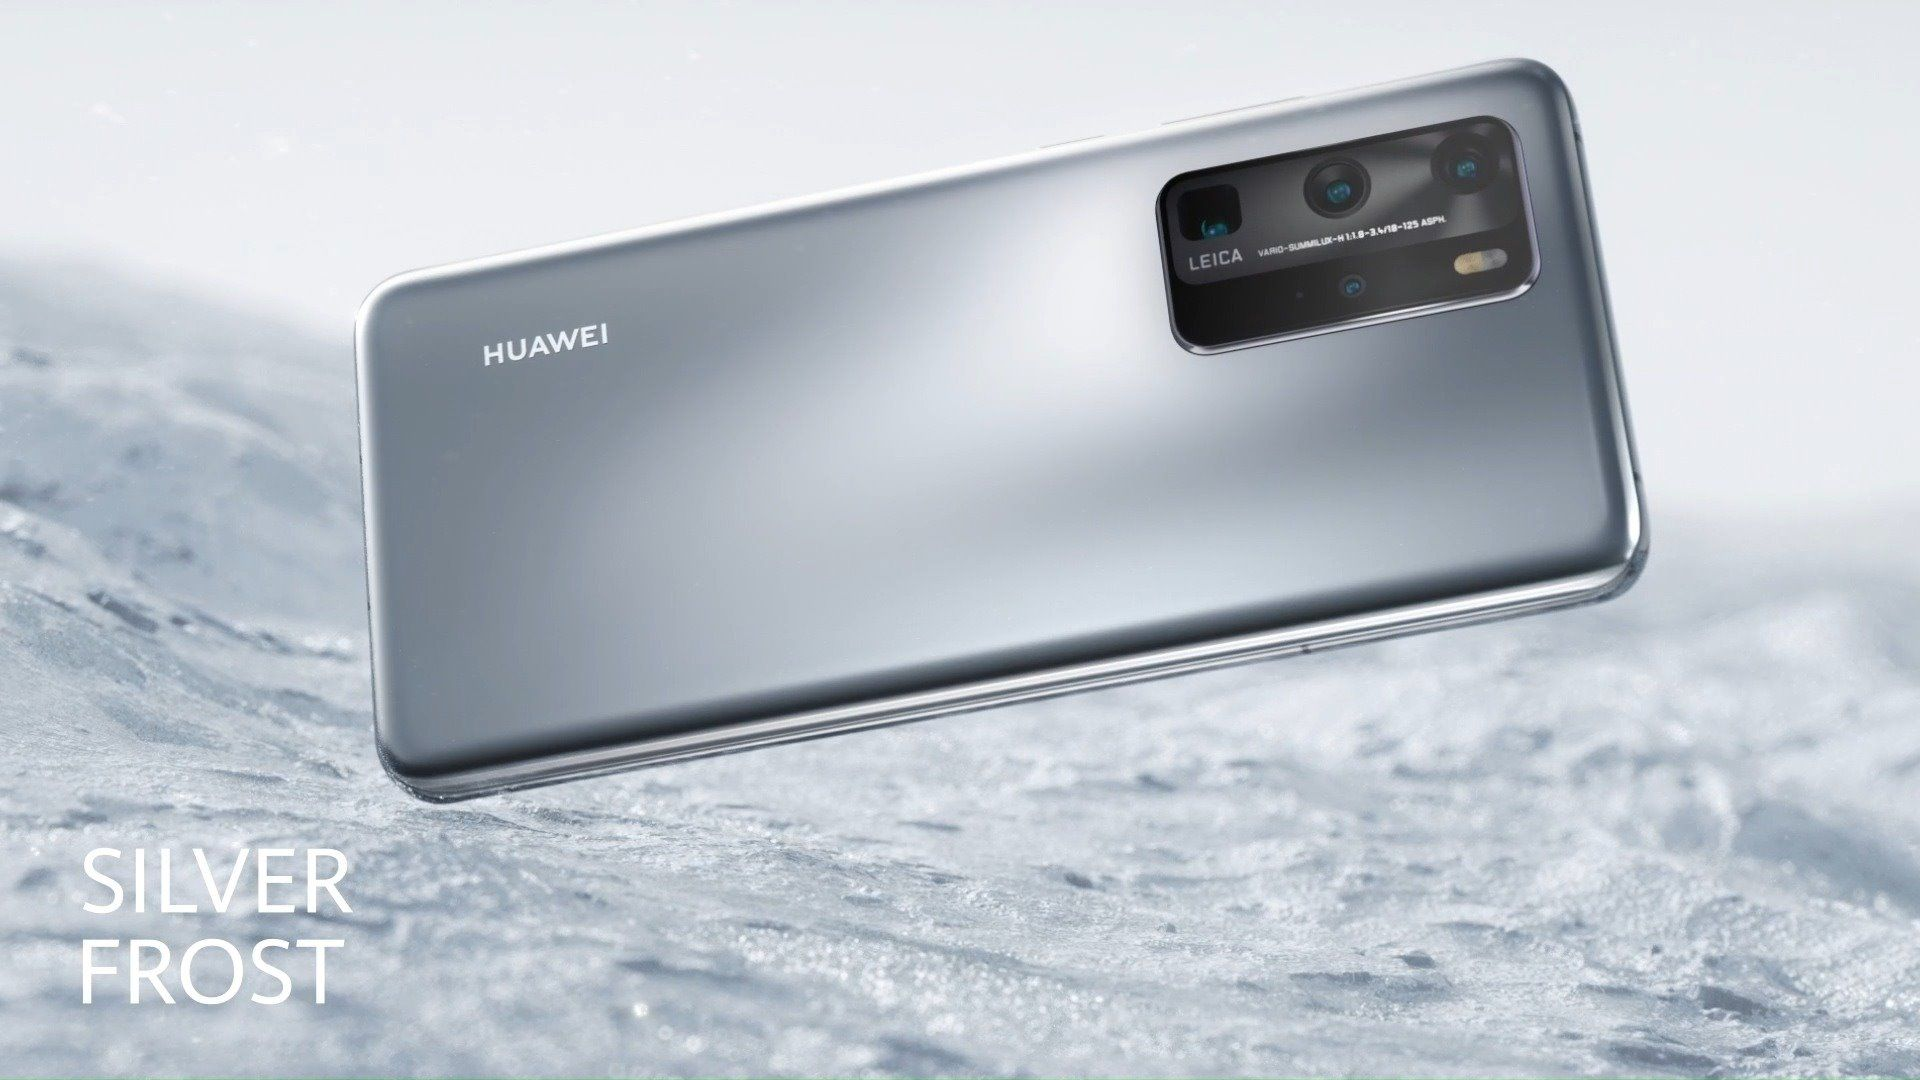 Our new #HUAWEIP40 Silver Frost edition is silky to the touch. With a stunning refractive matte finish, enjoy beauty without imperfections. #VisionaryPhotography